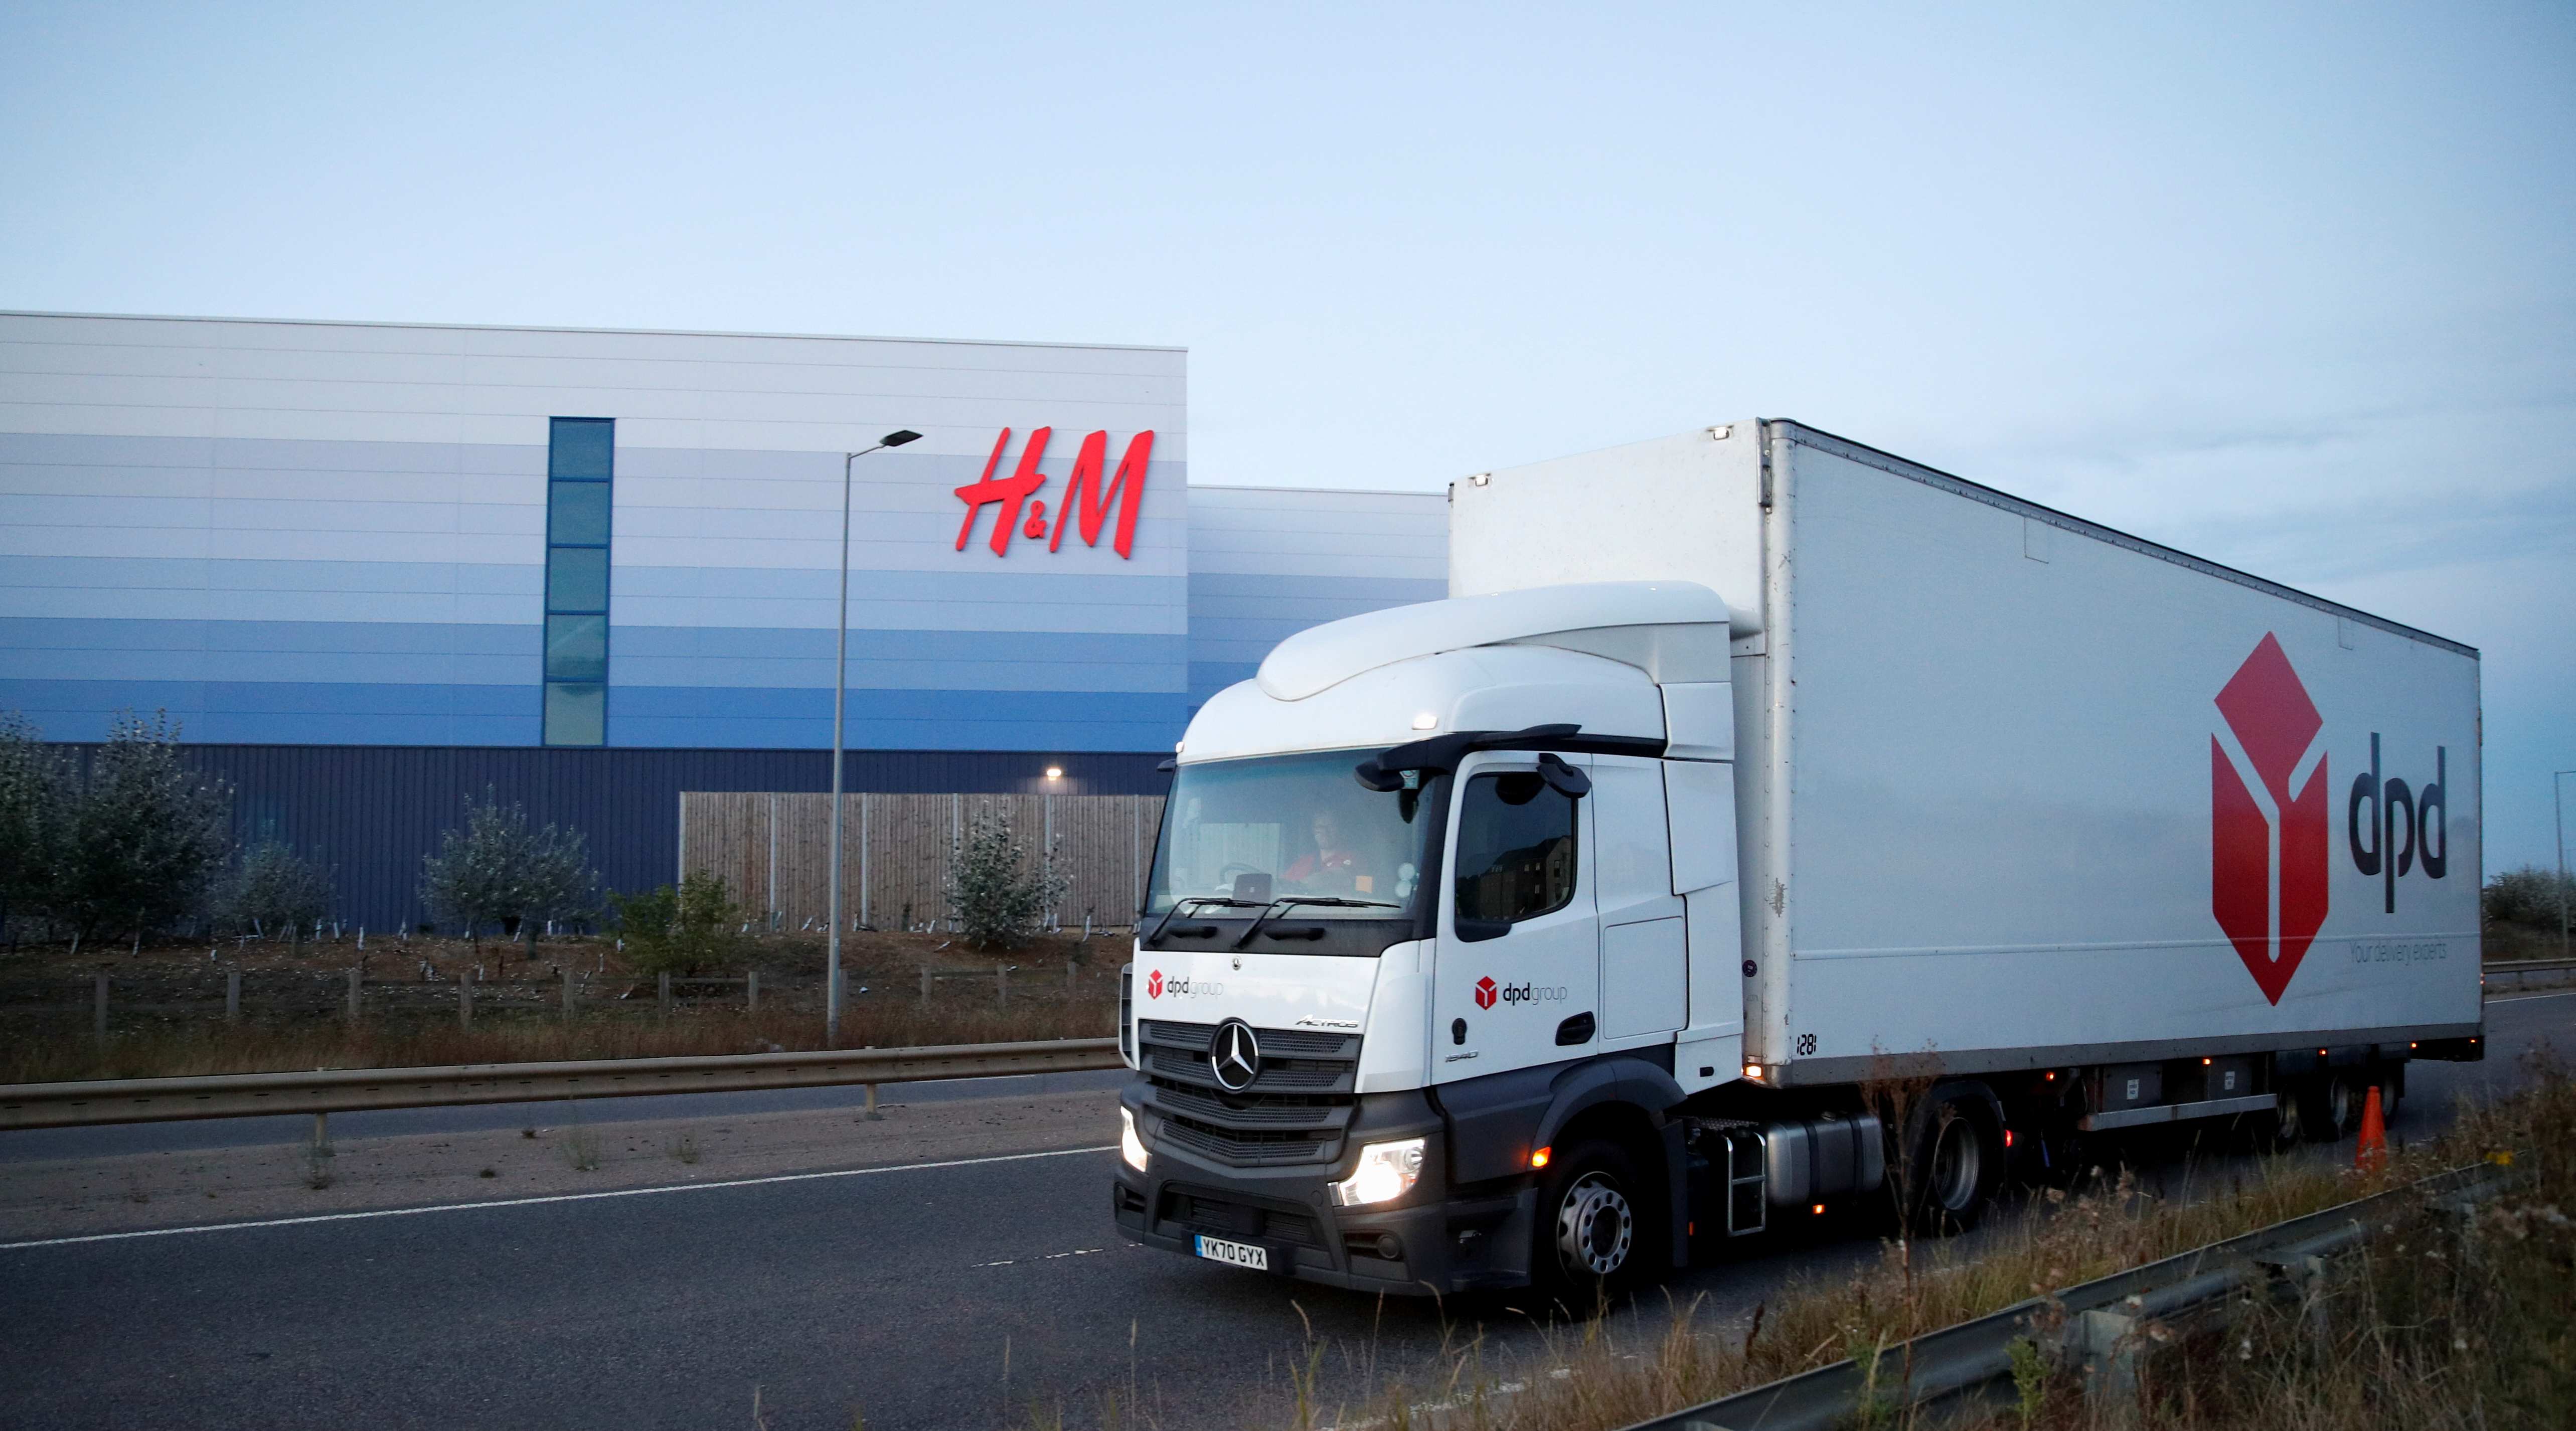 A DPD lorry drives past an H&M warehouse at Magna Park in Milton Keynes, Britain, September 26, 2021.  REUTERS/Andrew Boyers